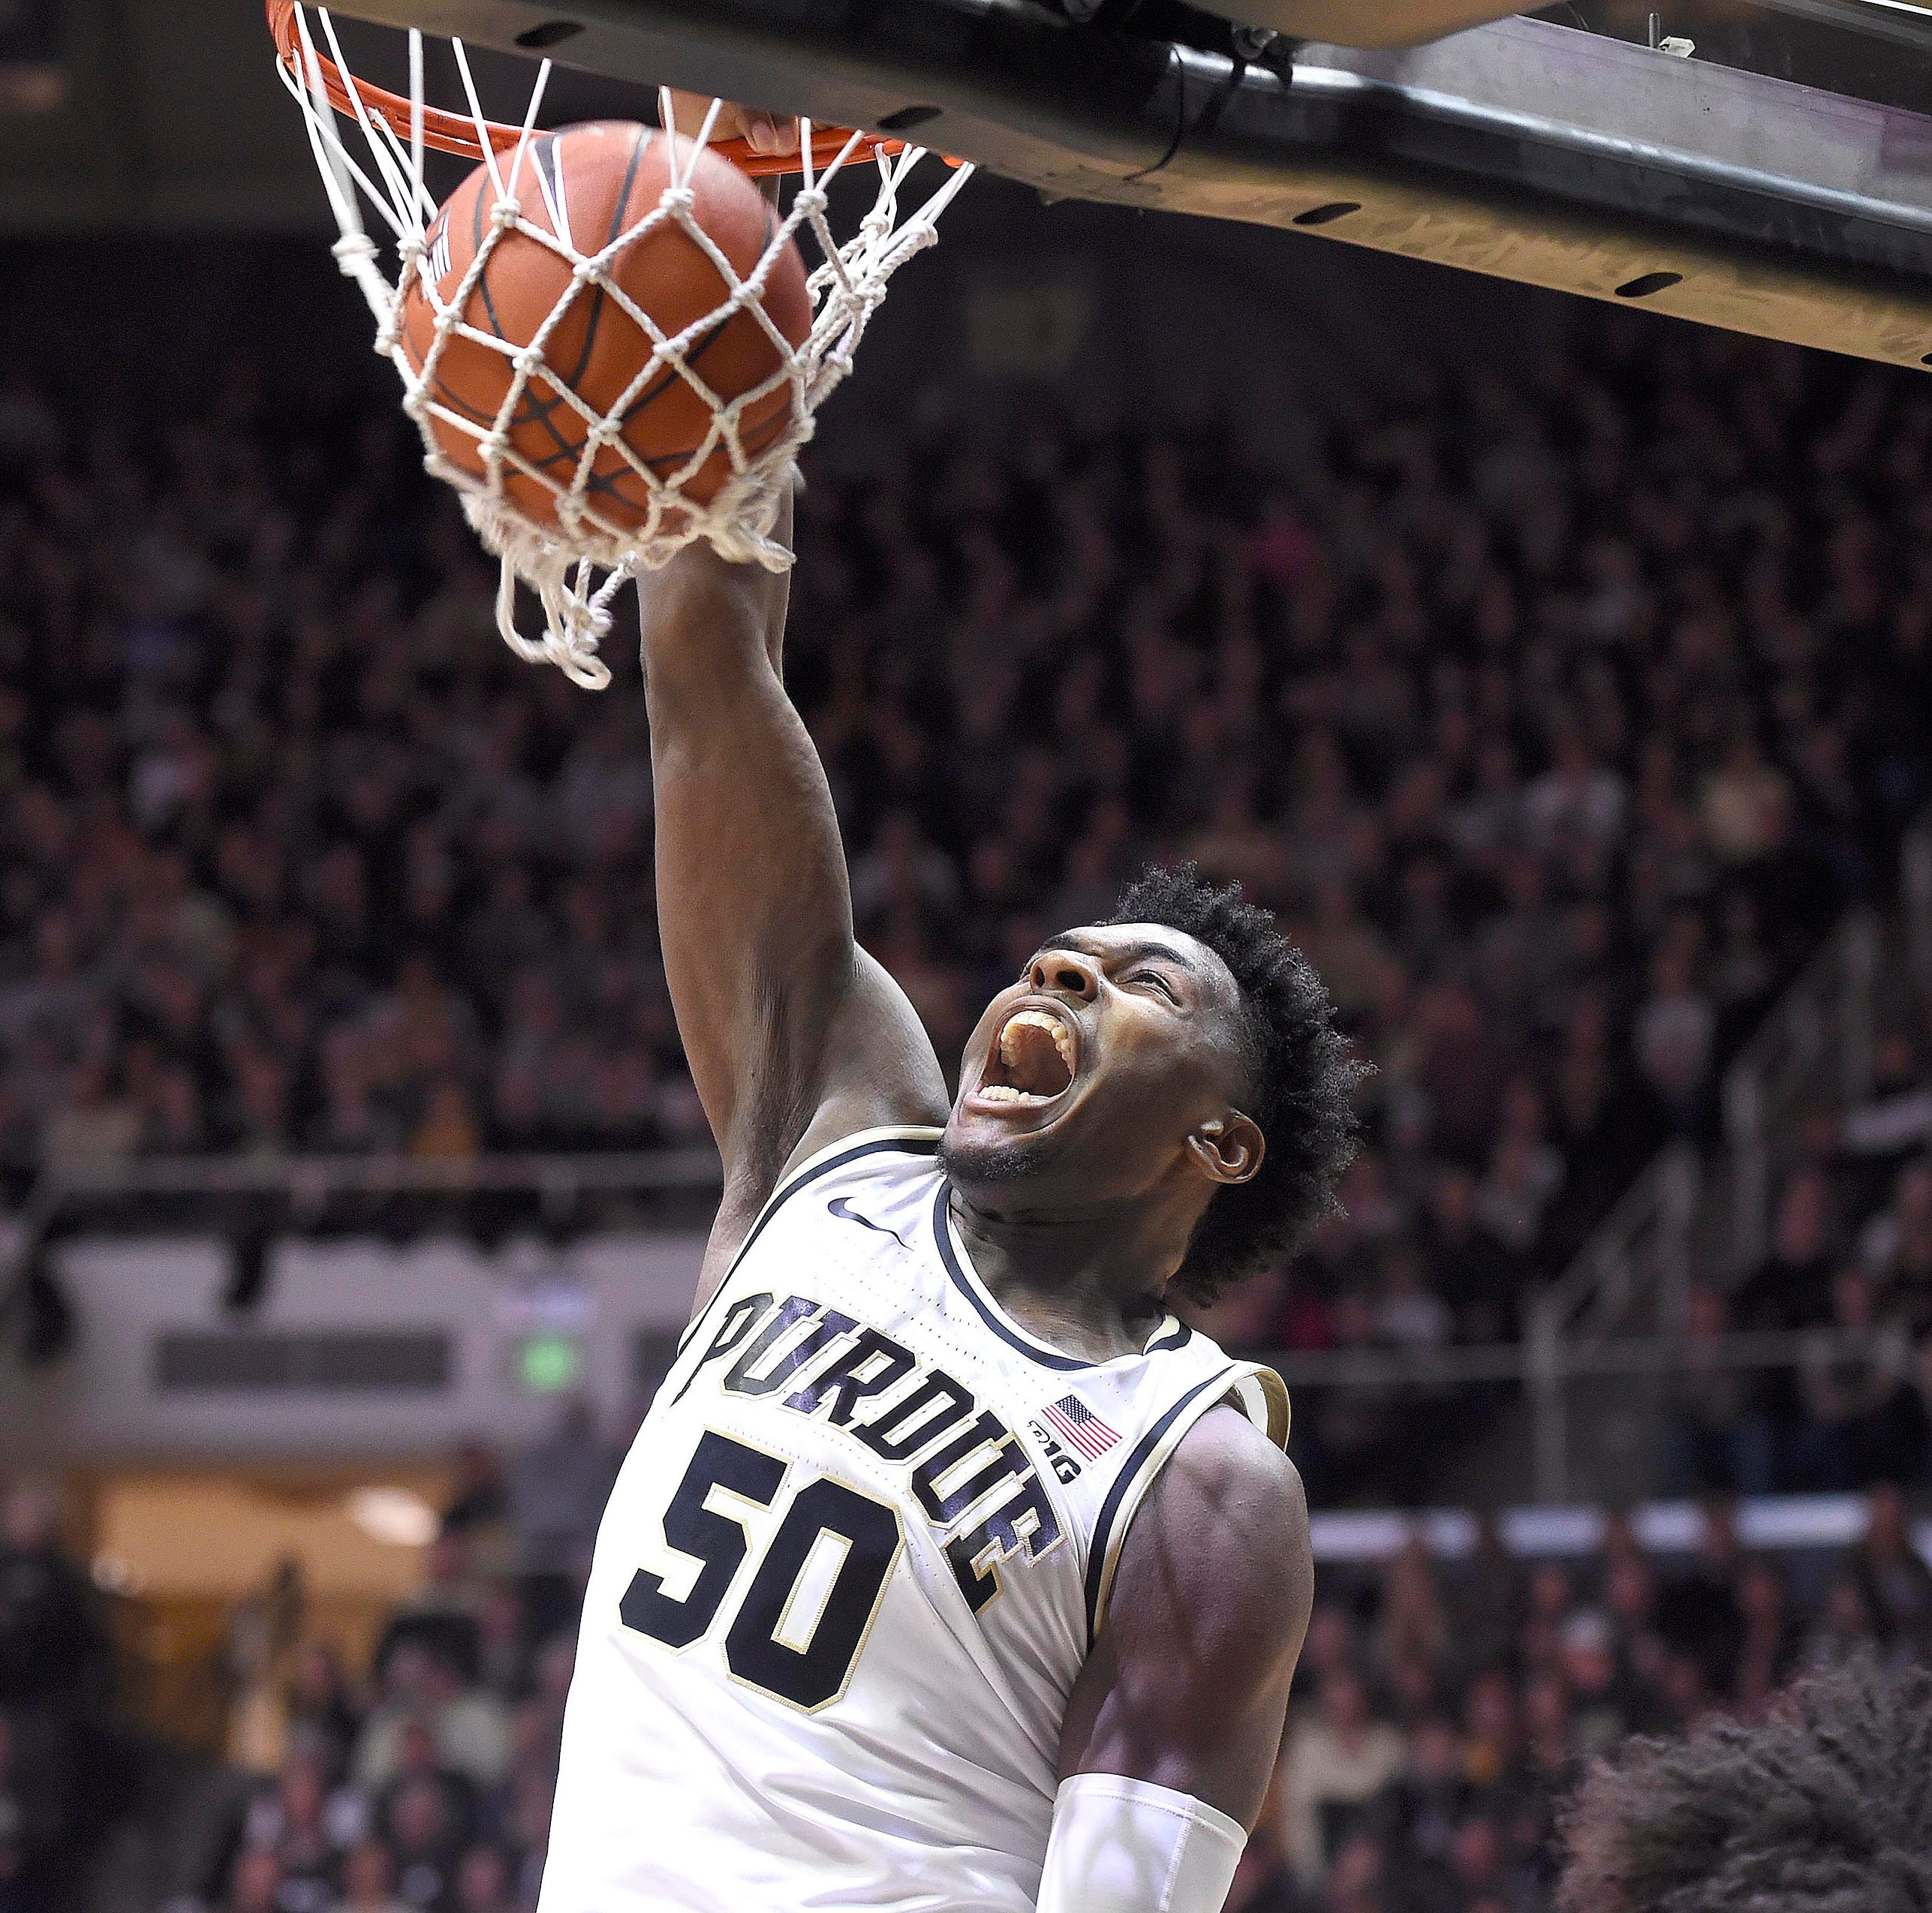 Purdue's Trevion Williams once left Chicago's violence. He returns as a rising star.